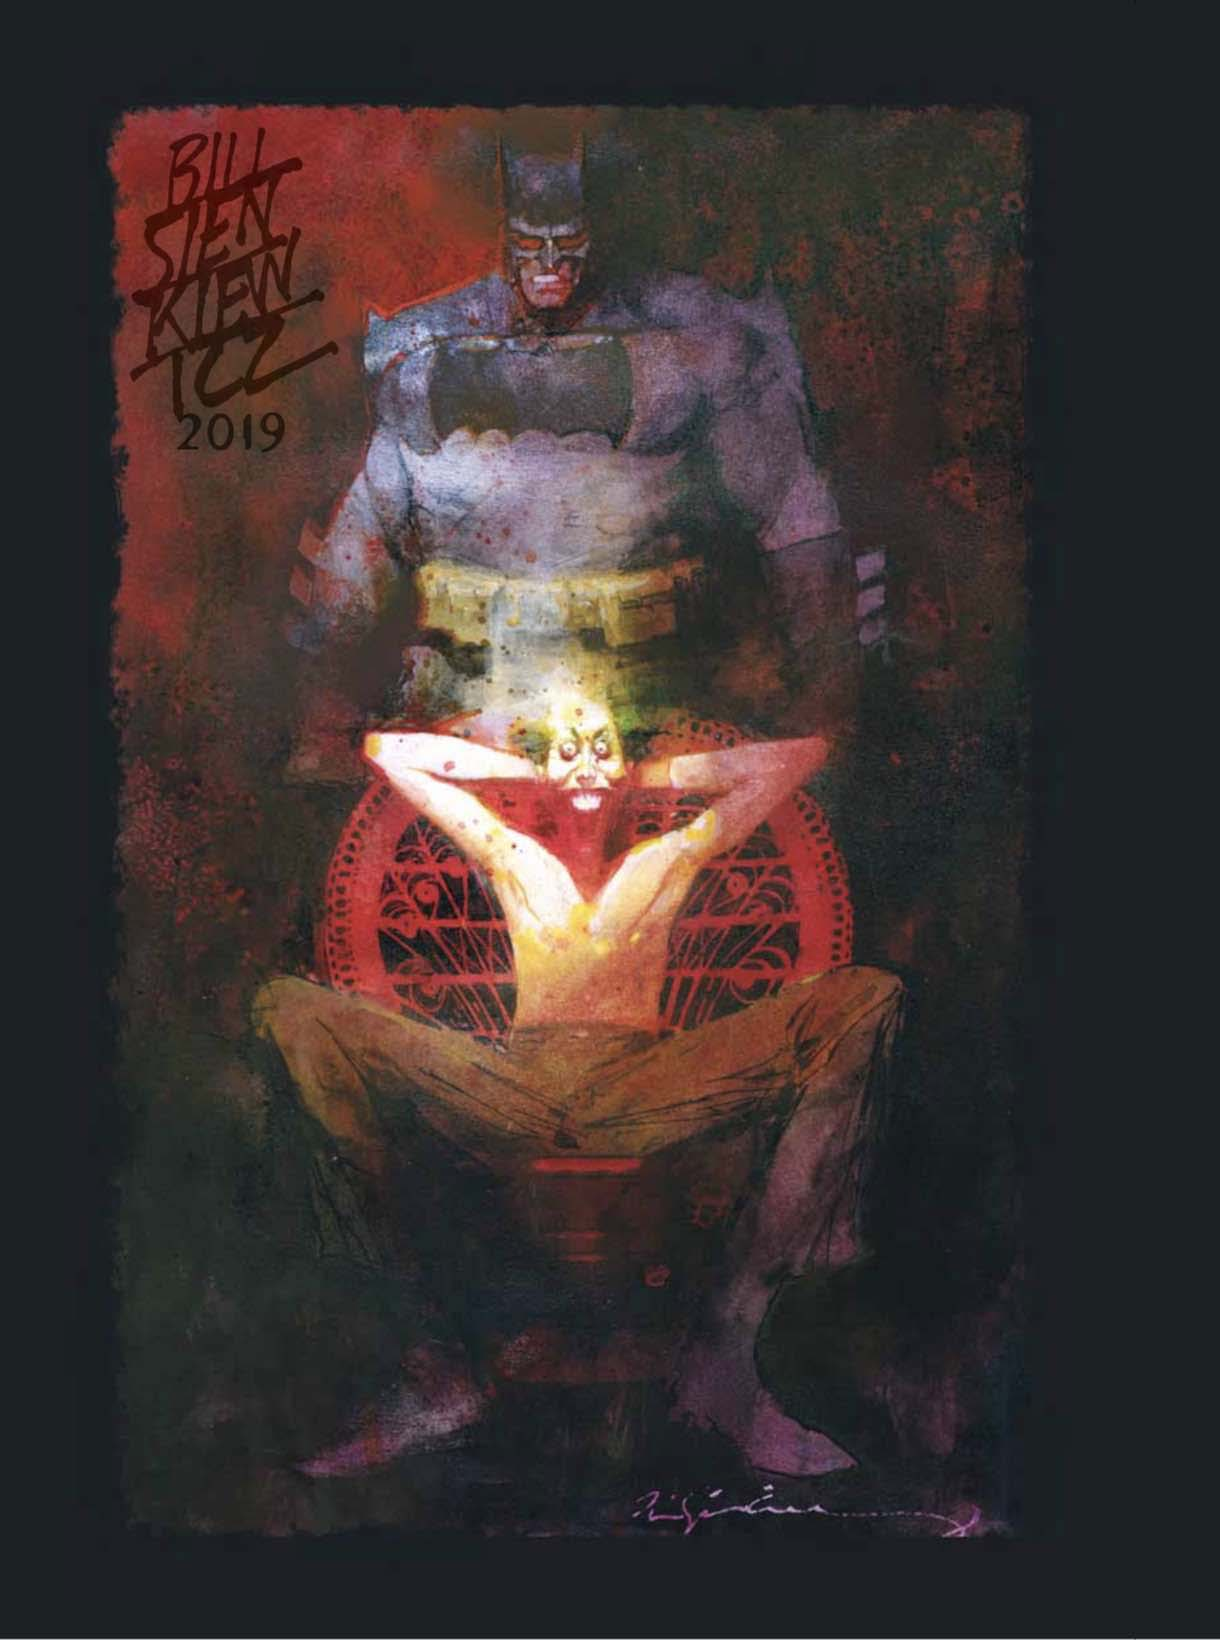 Bill Sienkiewicz's Exclusive Prints for San Diego Comic-Con 2019